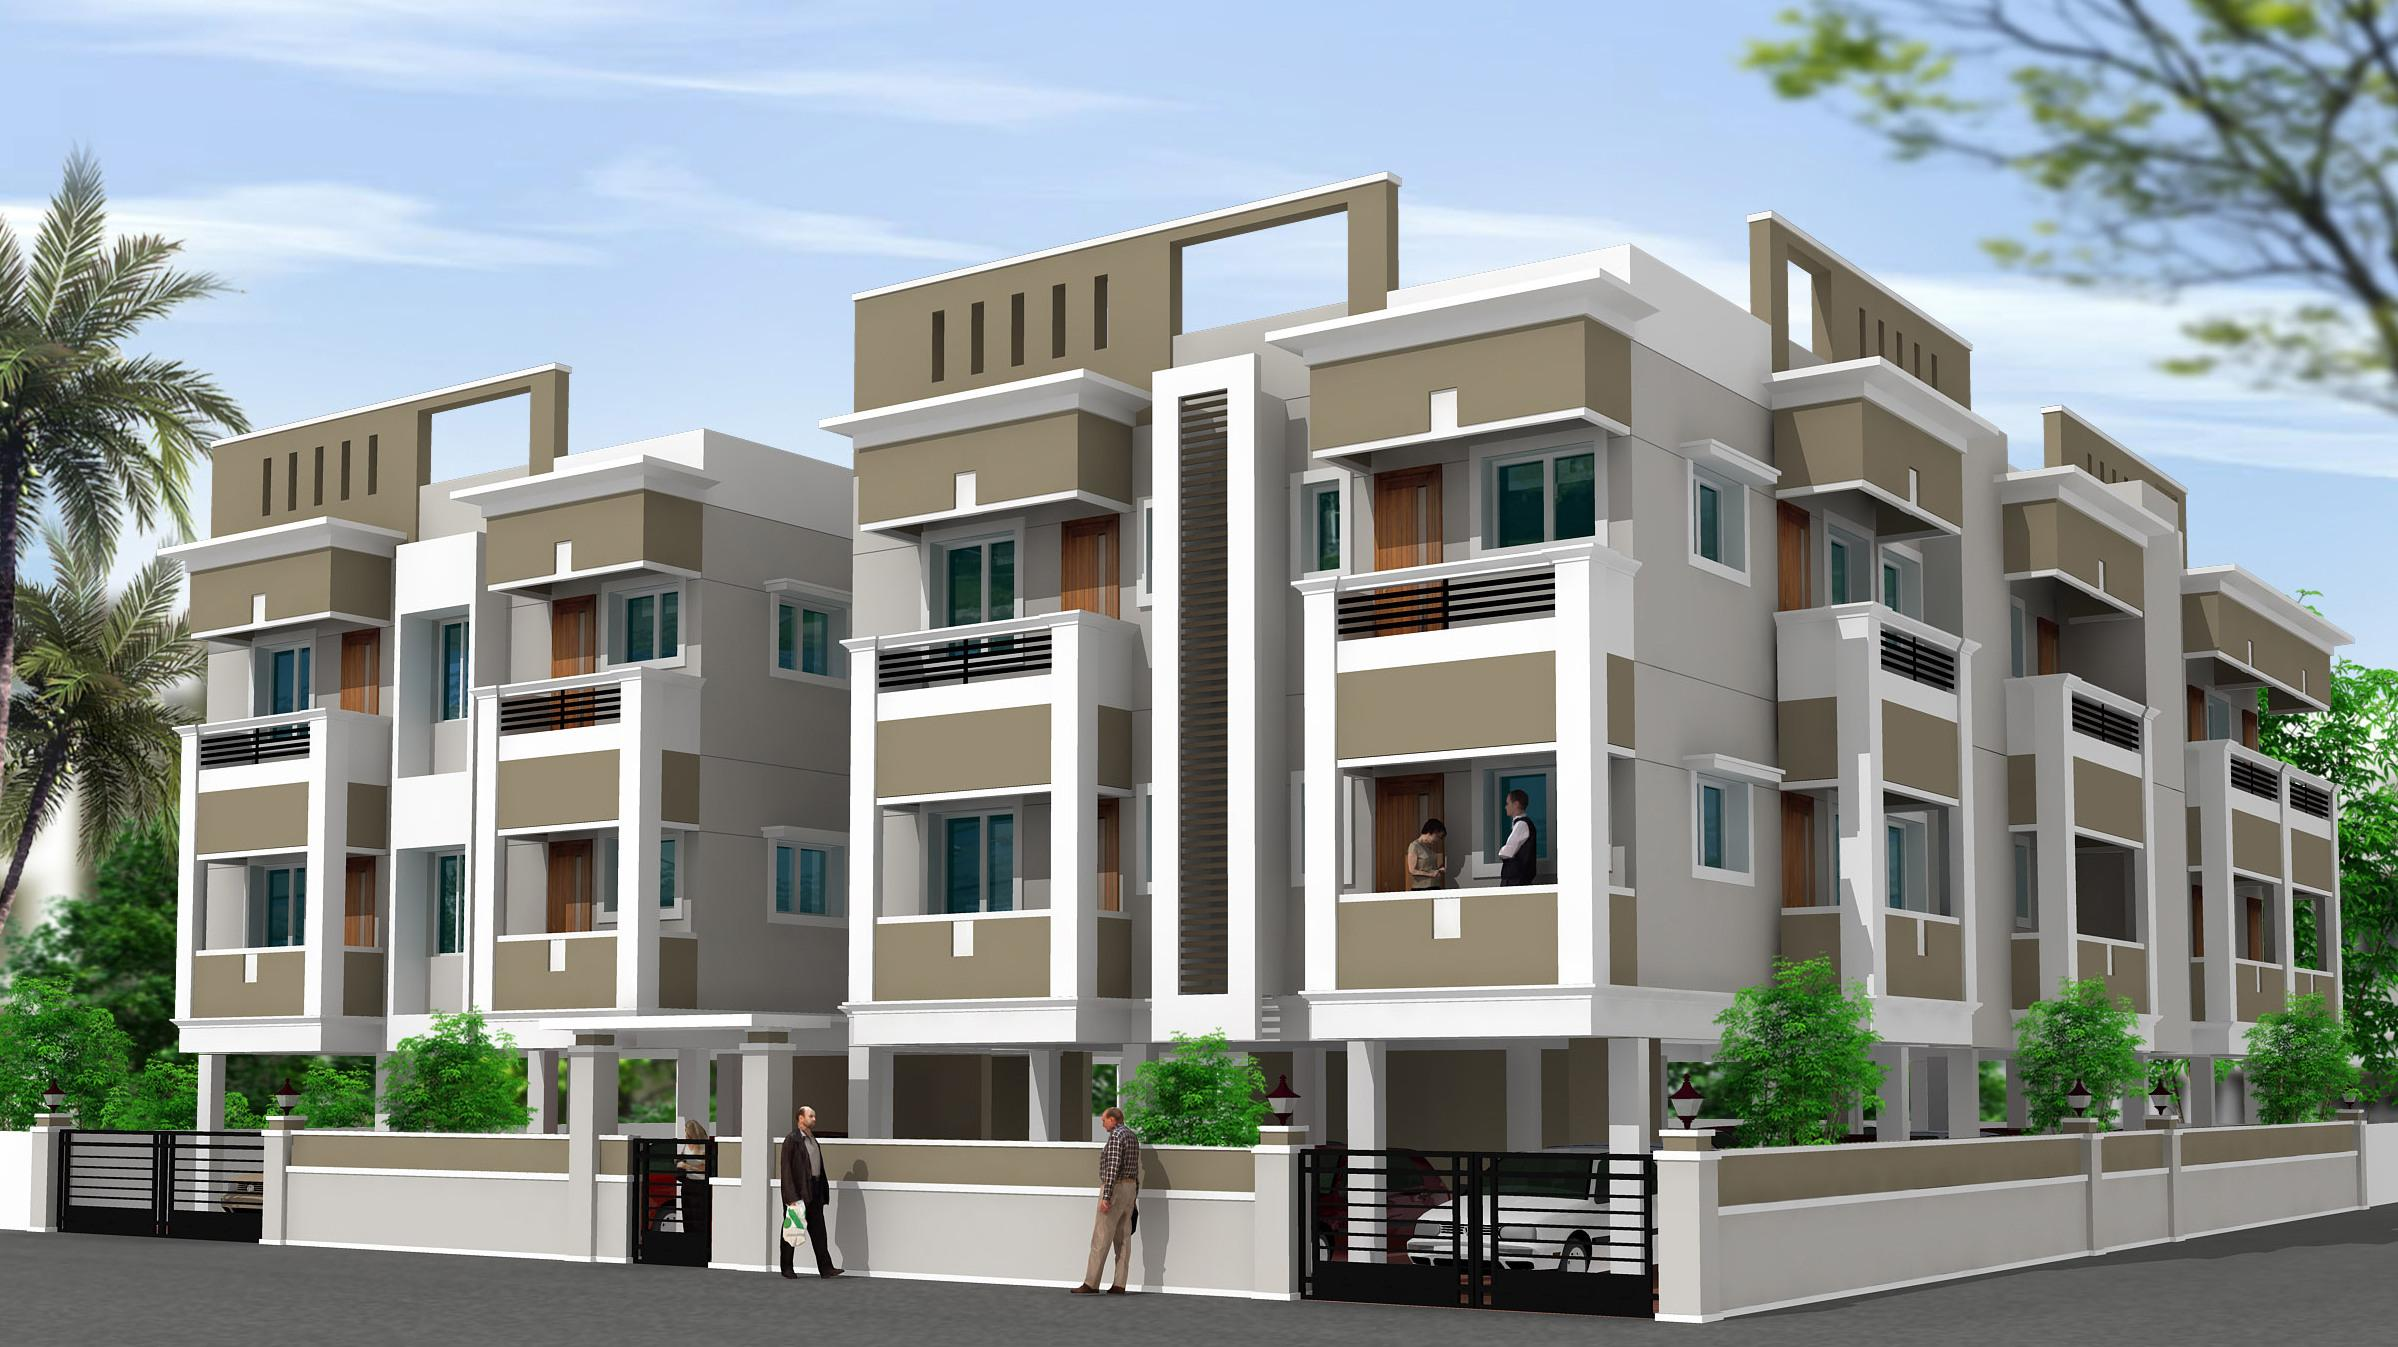 Residential building designs modern house for Residential decorating